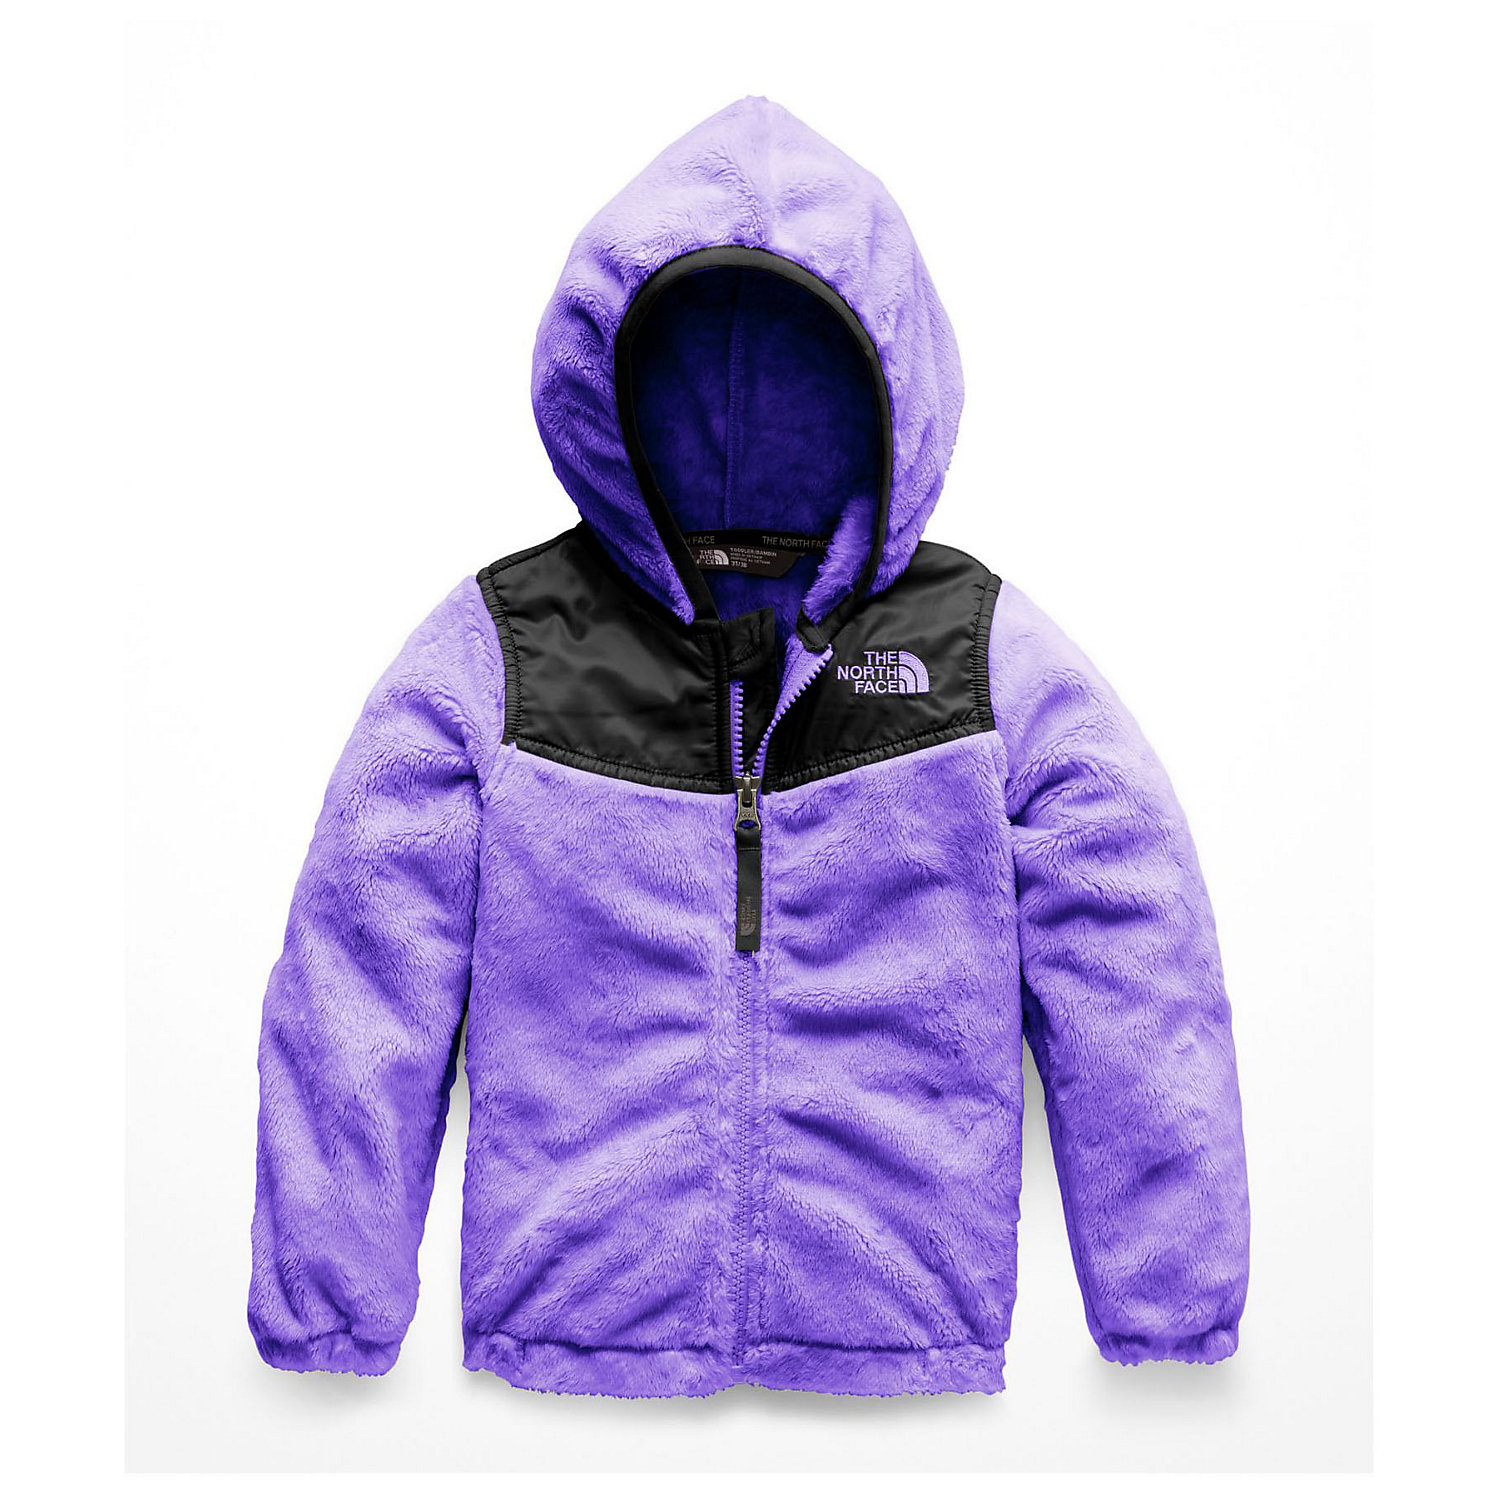 38601518c The North Face Toddler's Girls Oso Hoodie